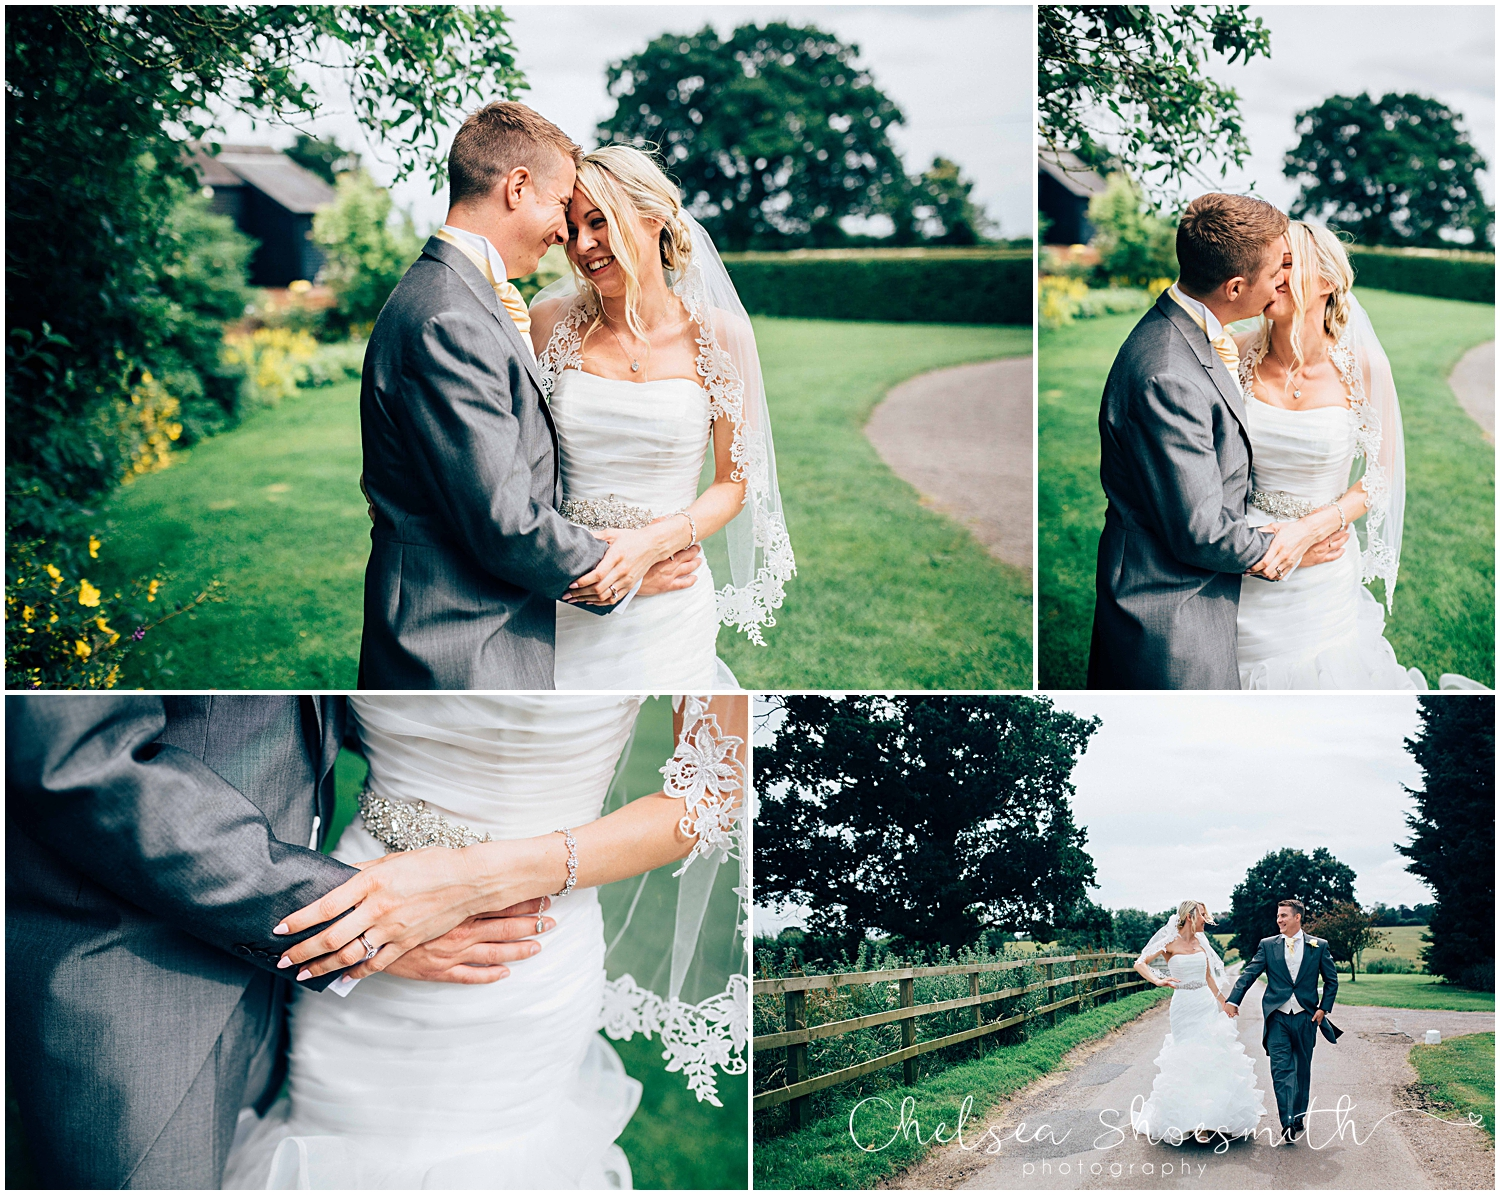 (333 of 548) Lauren & Andy Hertfordshire Wedding Milling Barn Chelsea Shoesmith Photography-1